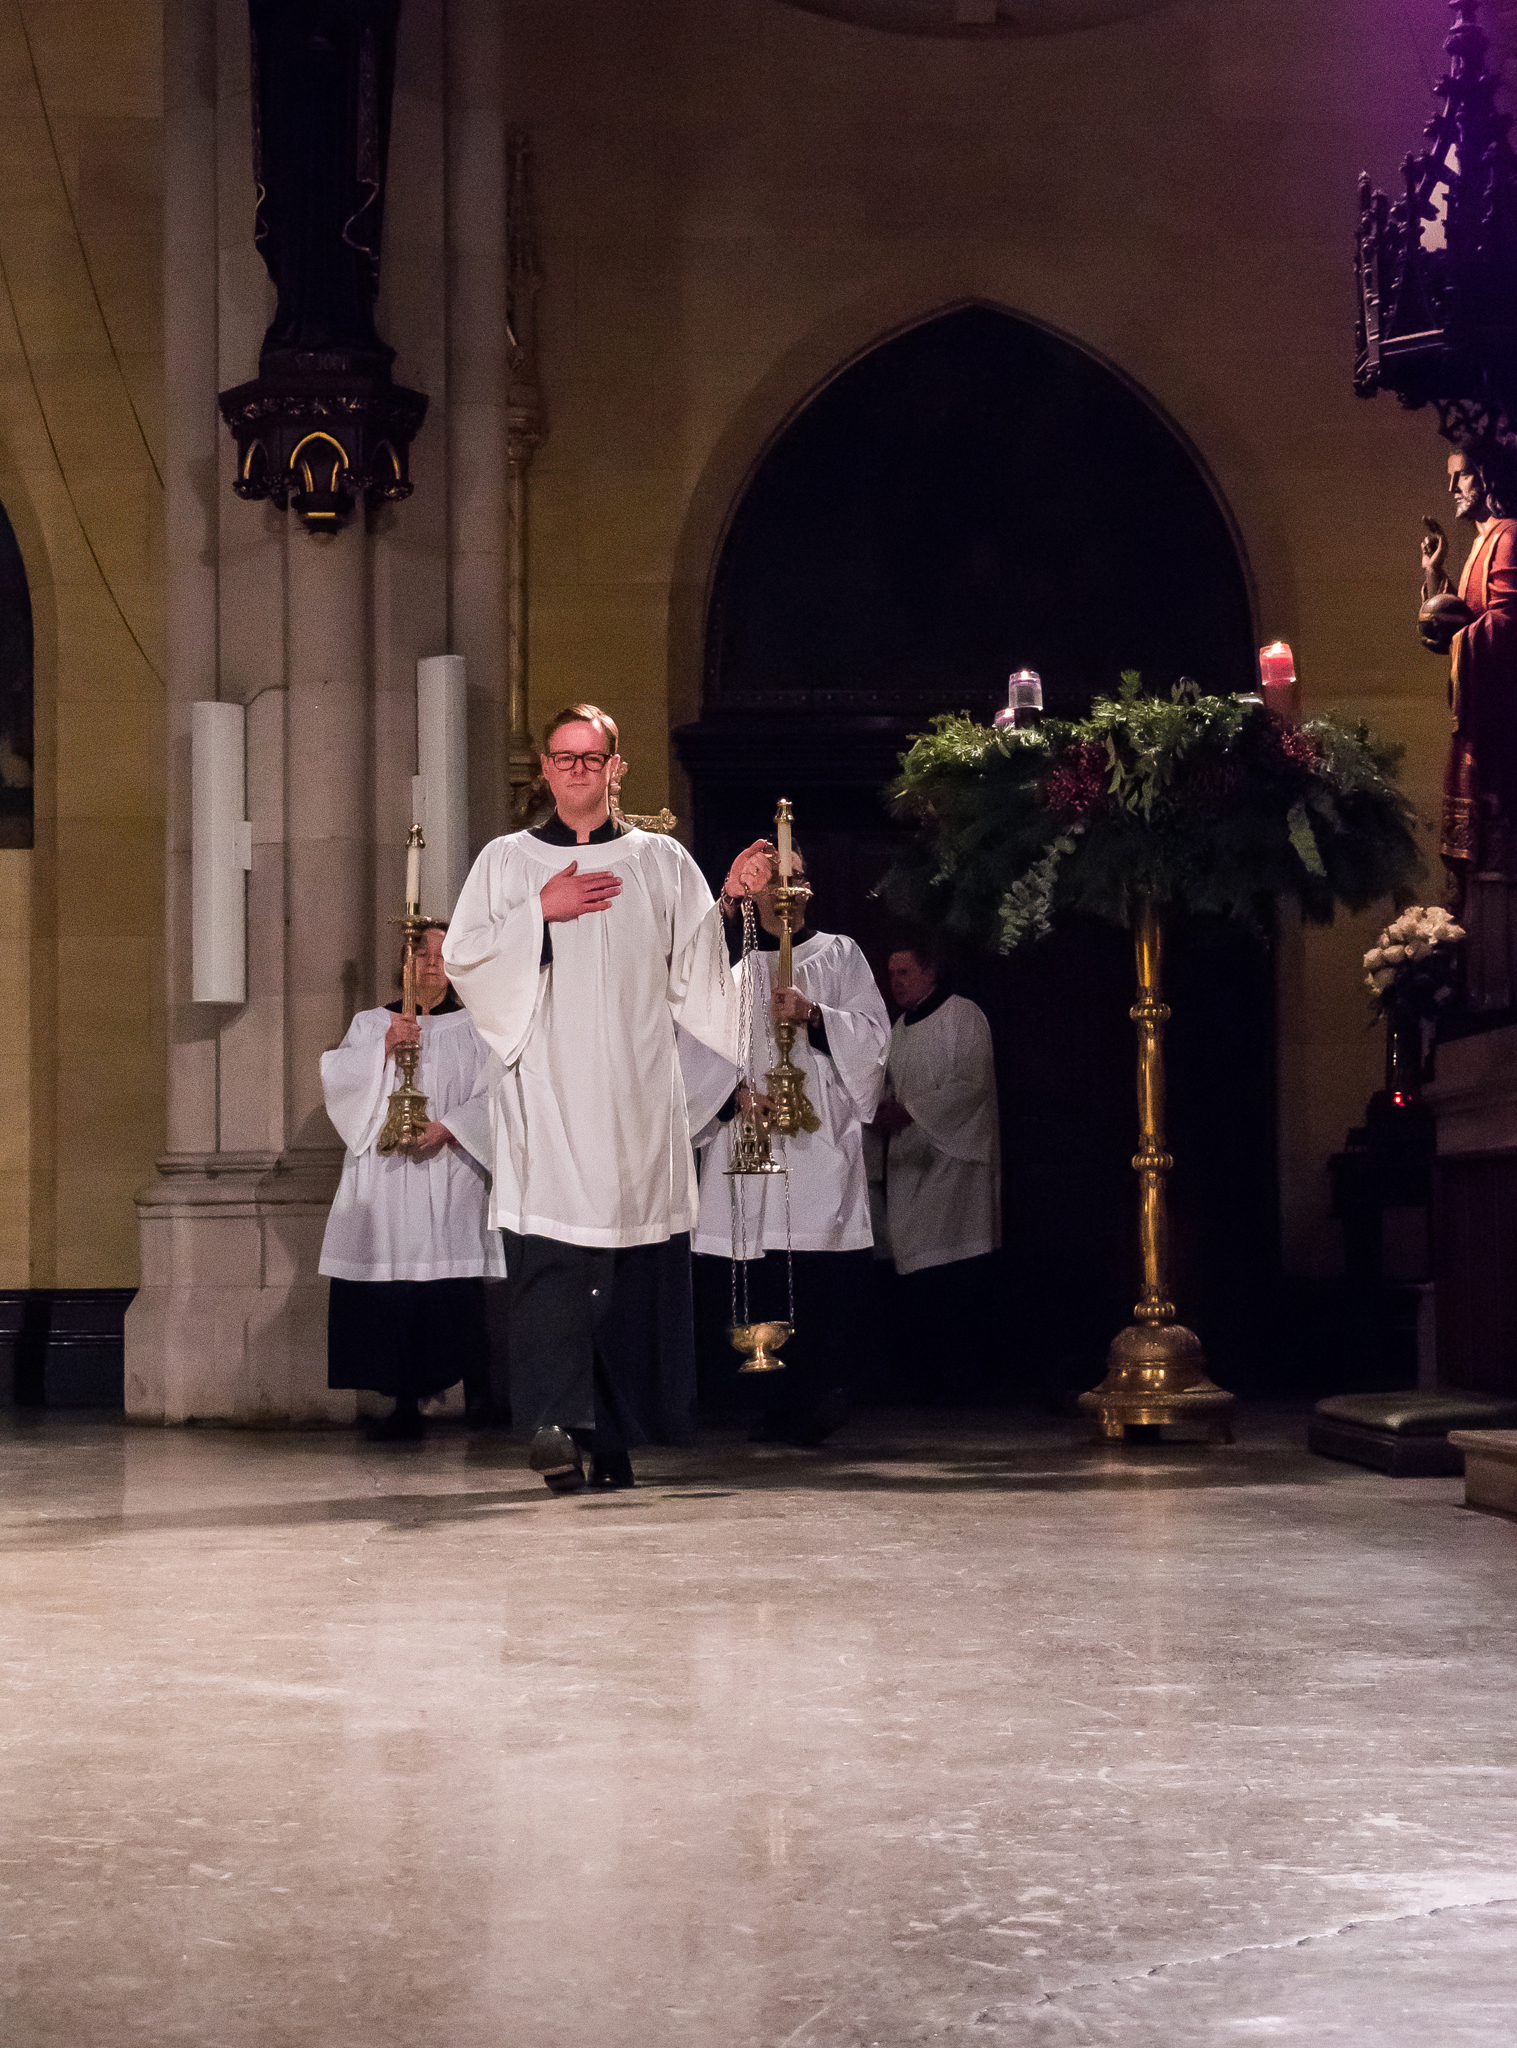 The Procession enters at Solemn Mass     Photo by Ricardo Gomez